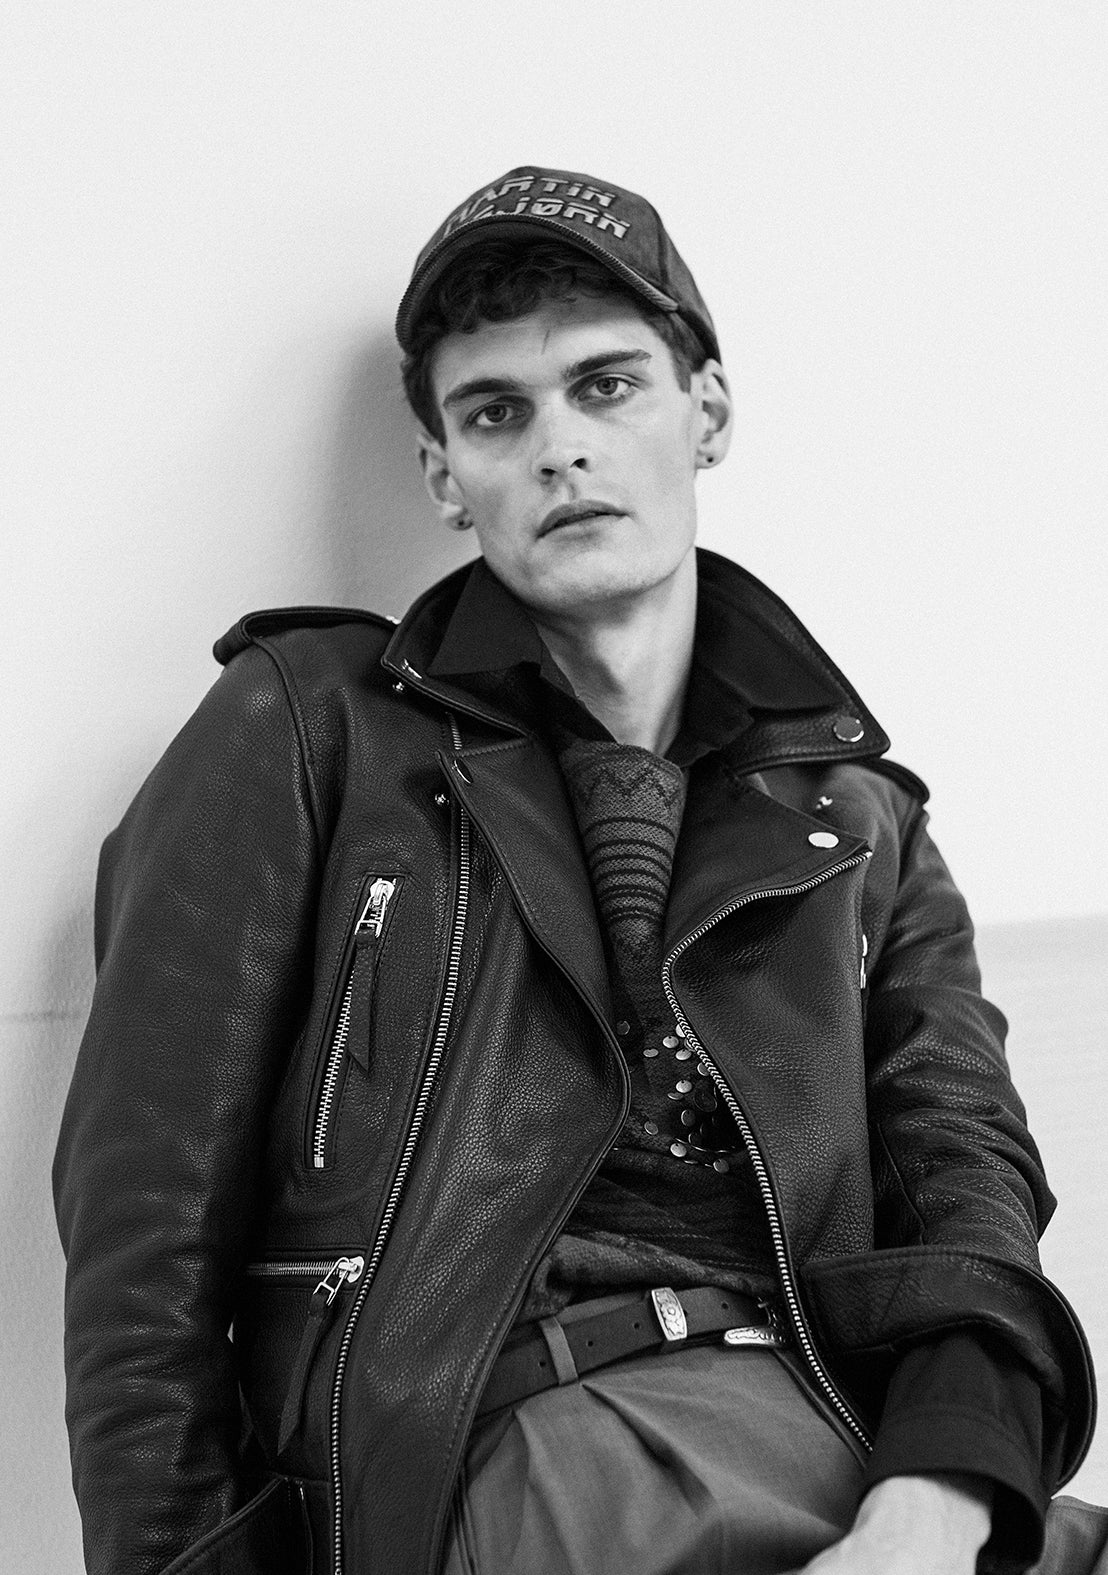 martin.asbjørn.classic.biker.leather.jacket.menswear